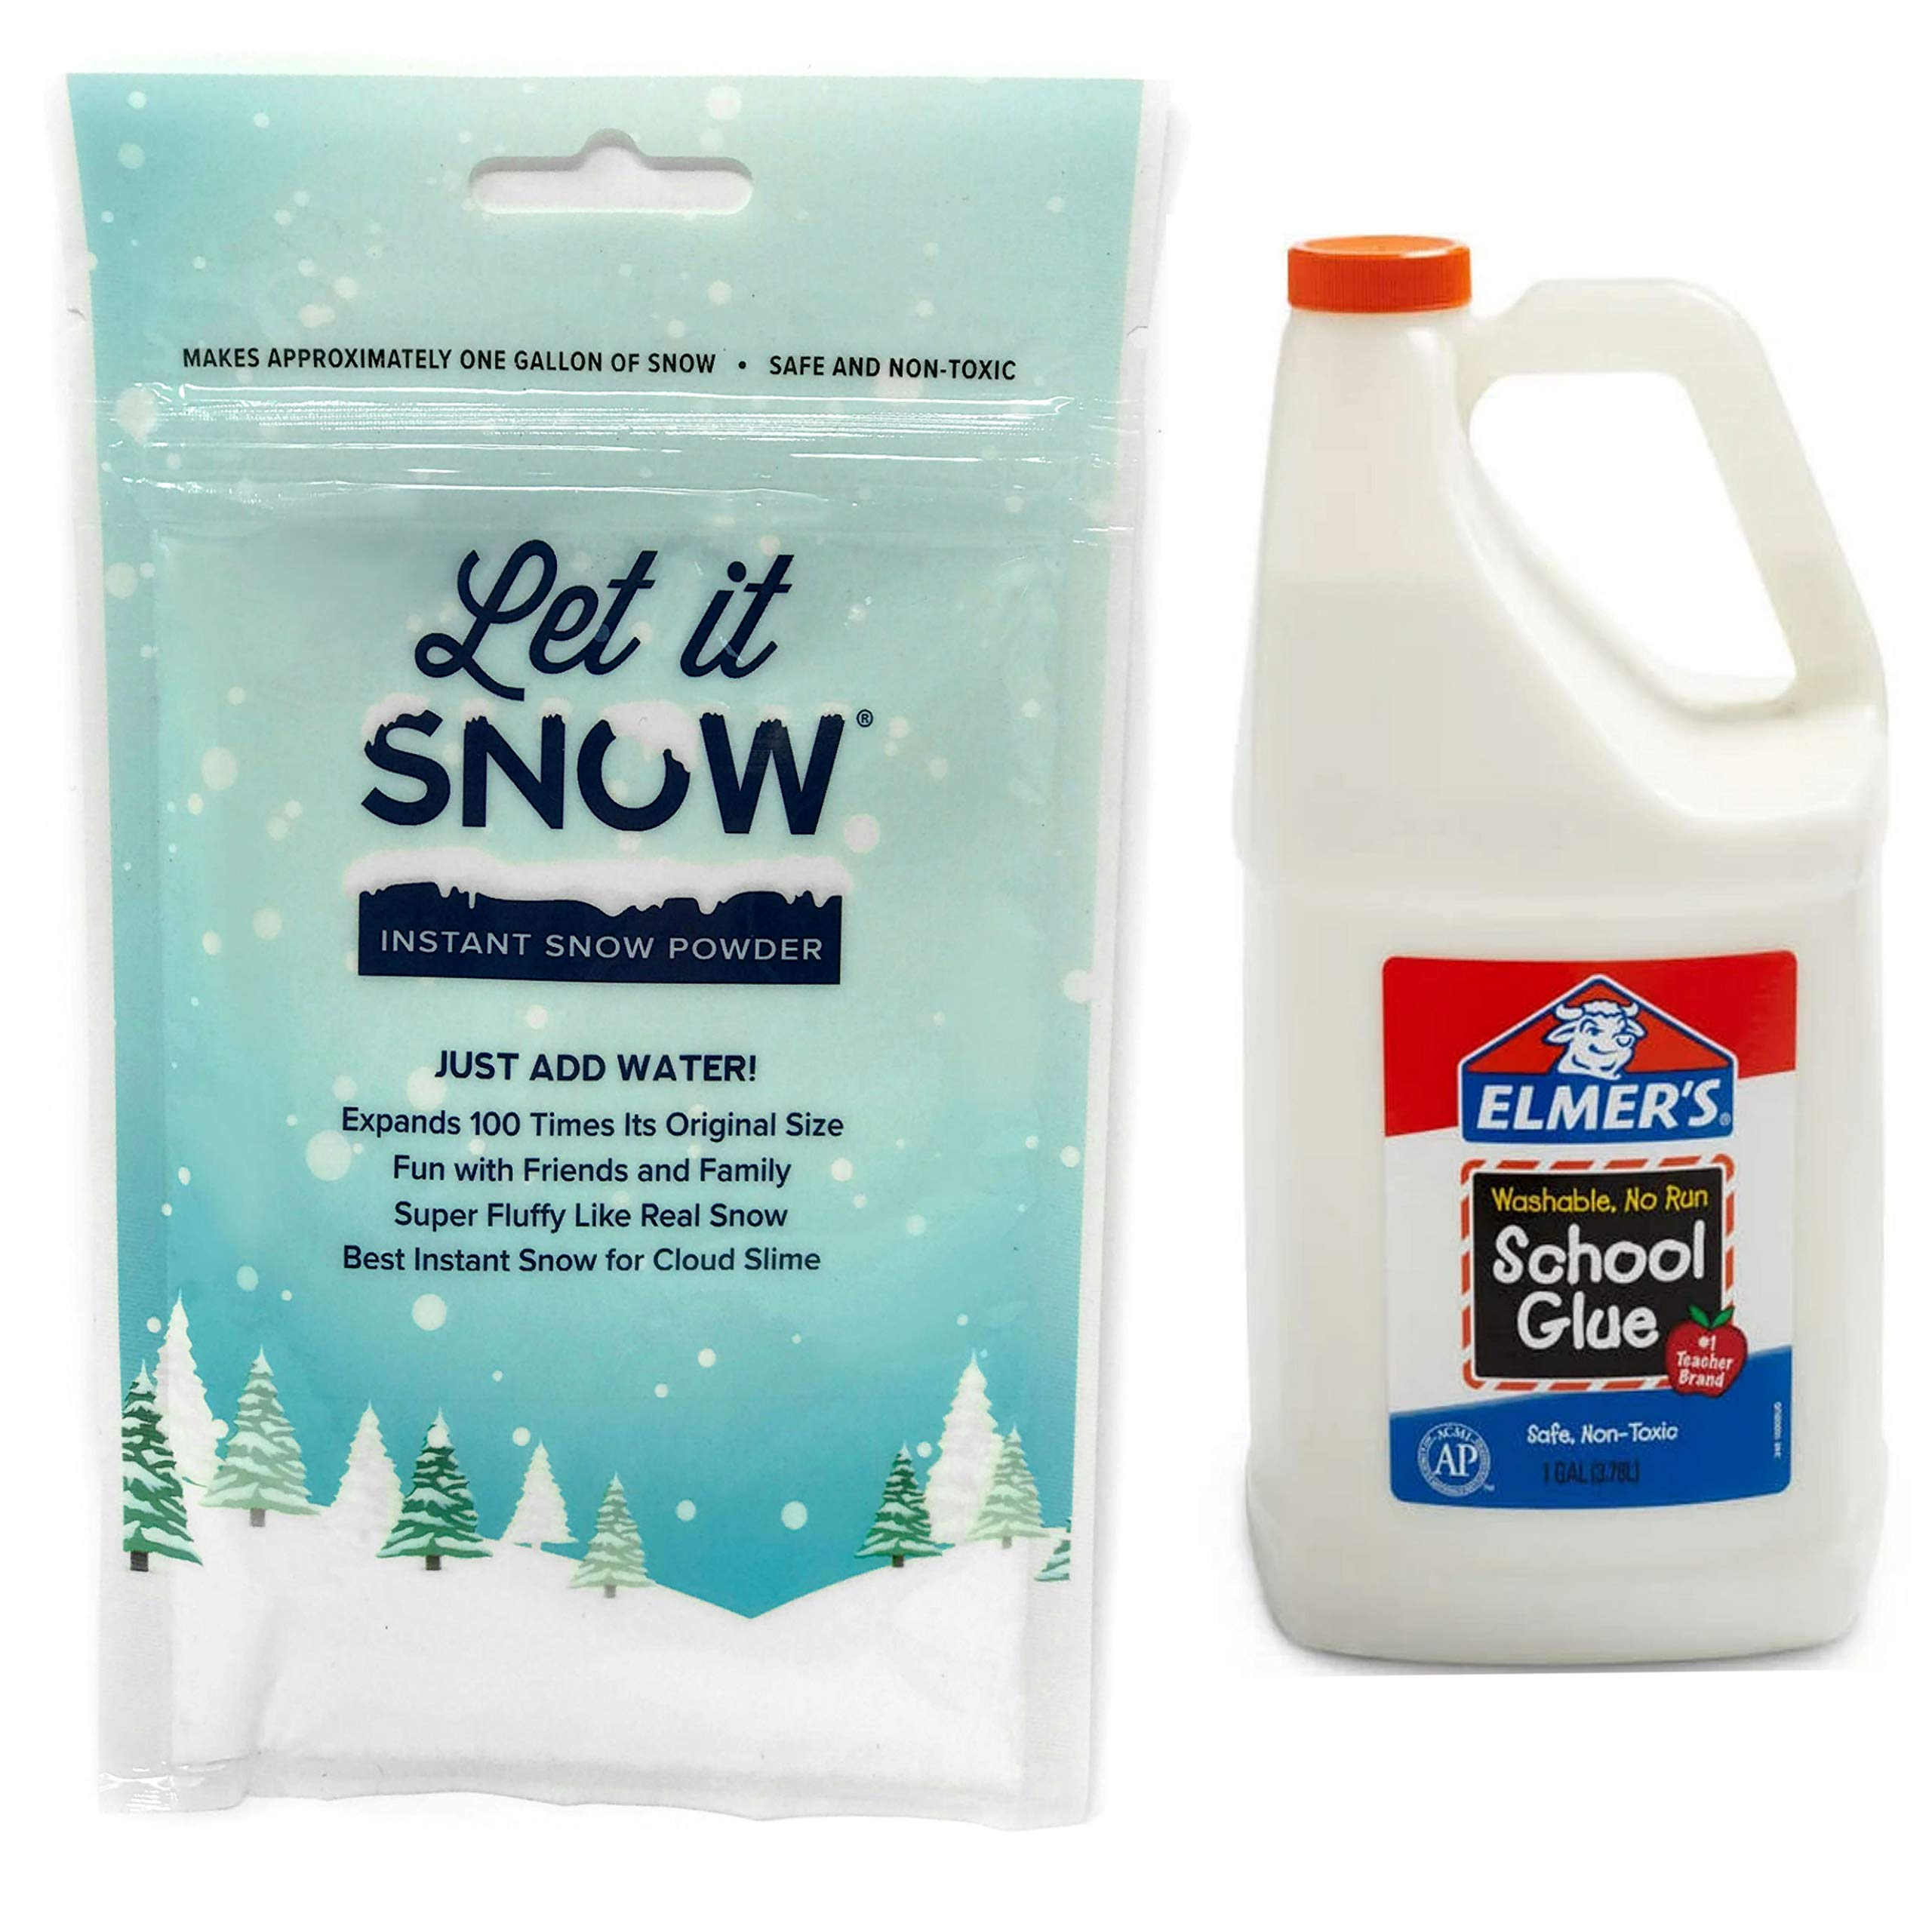 Let it Snow Instant Snow Powder (4 Gallons) and Elmer's Glue (1 Gallon) - Mix Makes Magical Fluffy White Artificial Snow - Perfect for Cloud Slime! Frozen Theme Birthday Parties and Snow Decorations! by Let it Snow